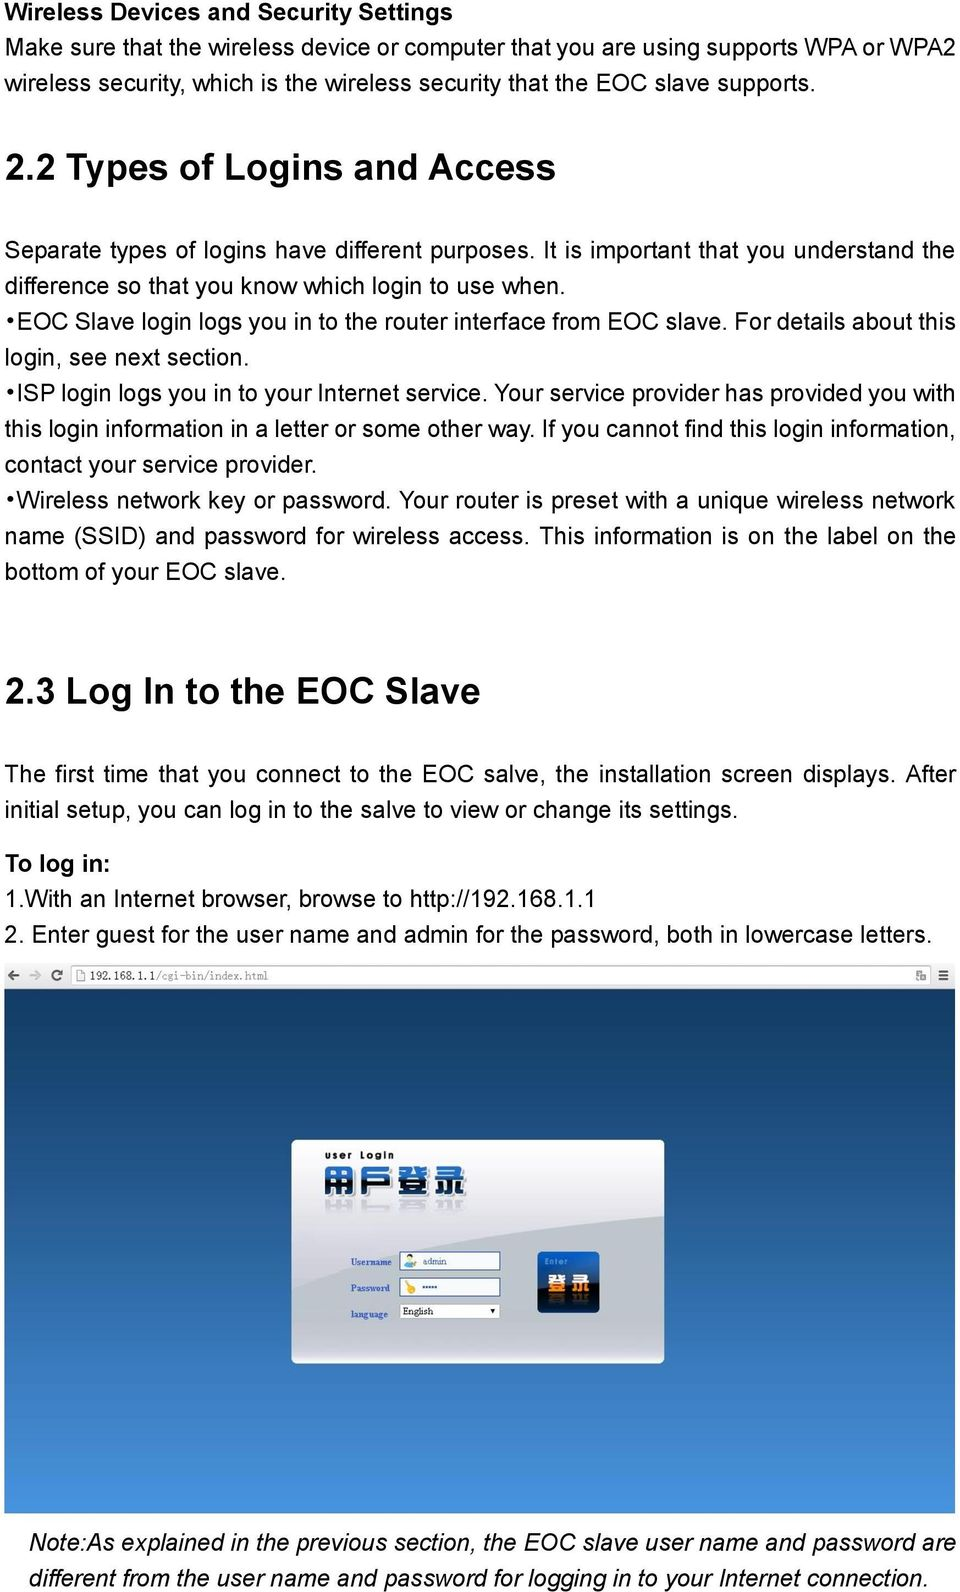 medium resolution of eoc slave login logs you in to the router interface from eoc slave for details